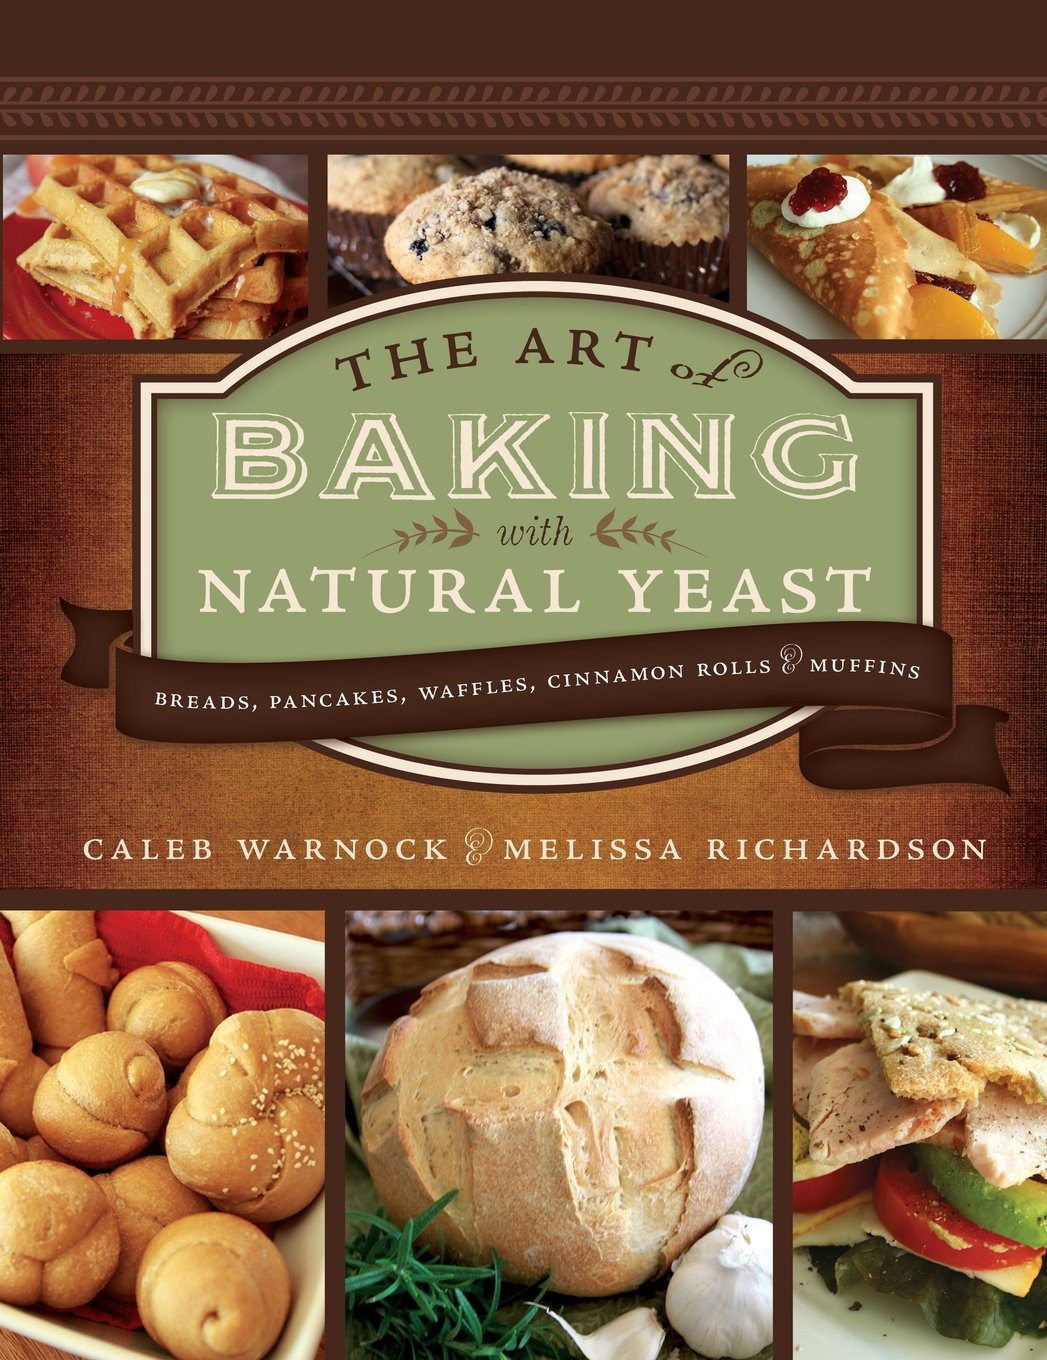 The Art of Baking with Natural Yeast: Breads, Pancakes, Waffles, Cinnamon Rolls and Muffins by Cedar Fort, Inc.